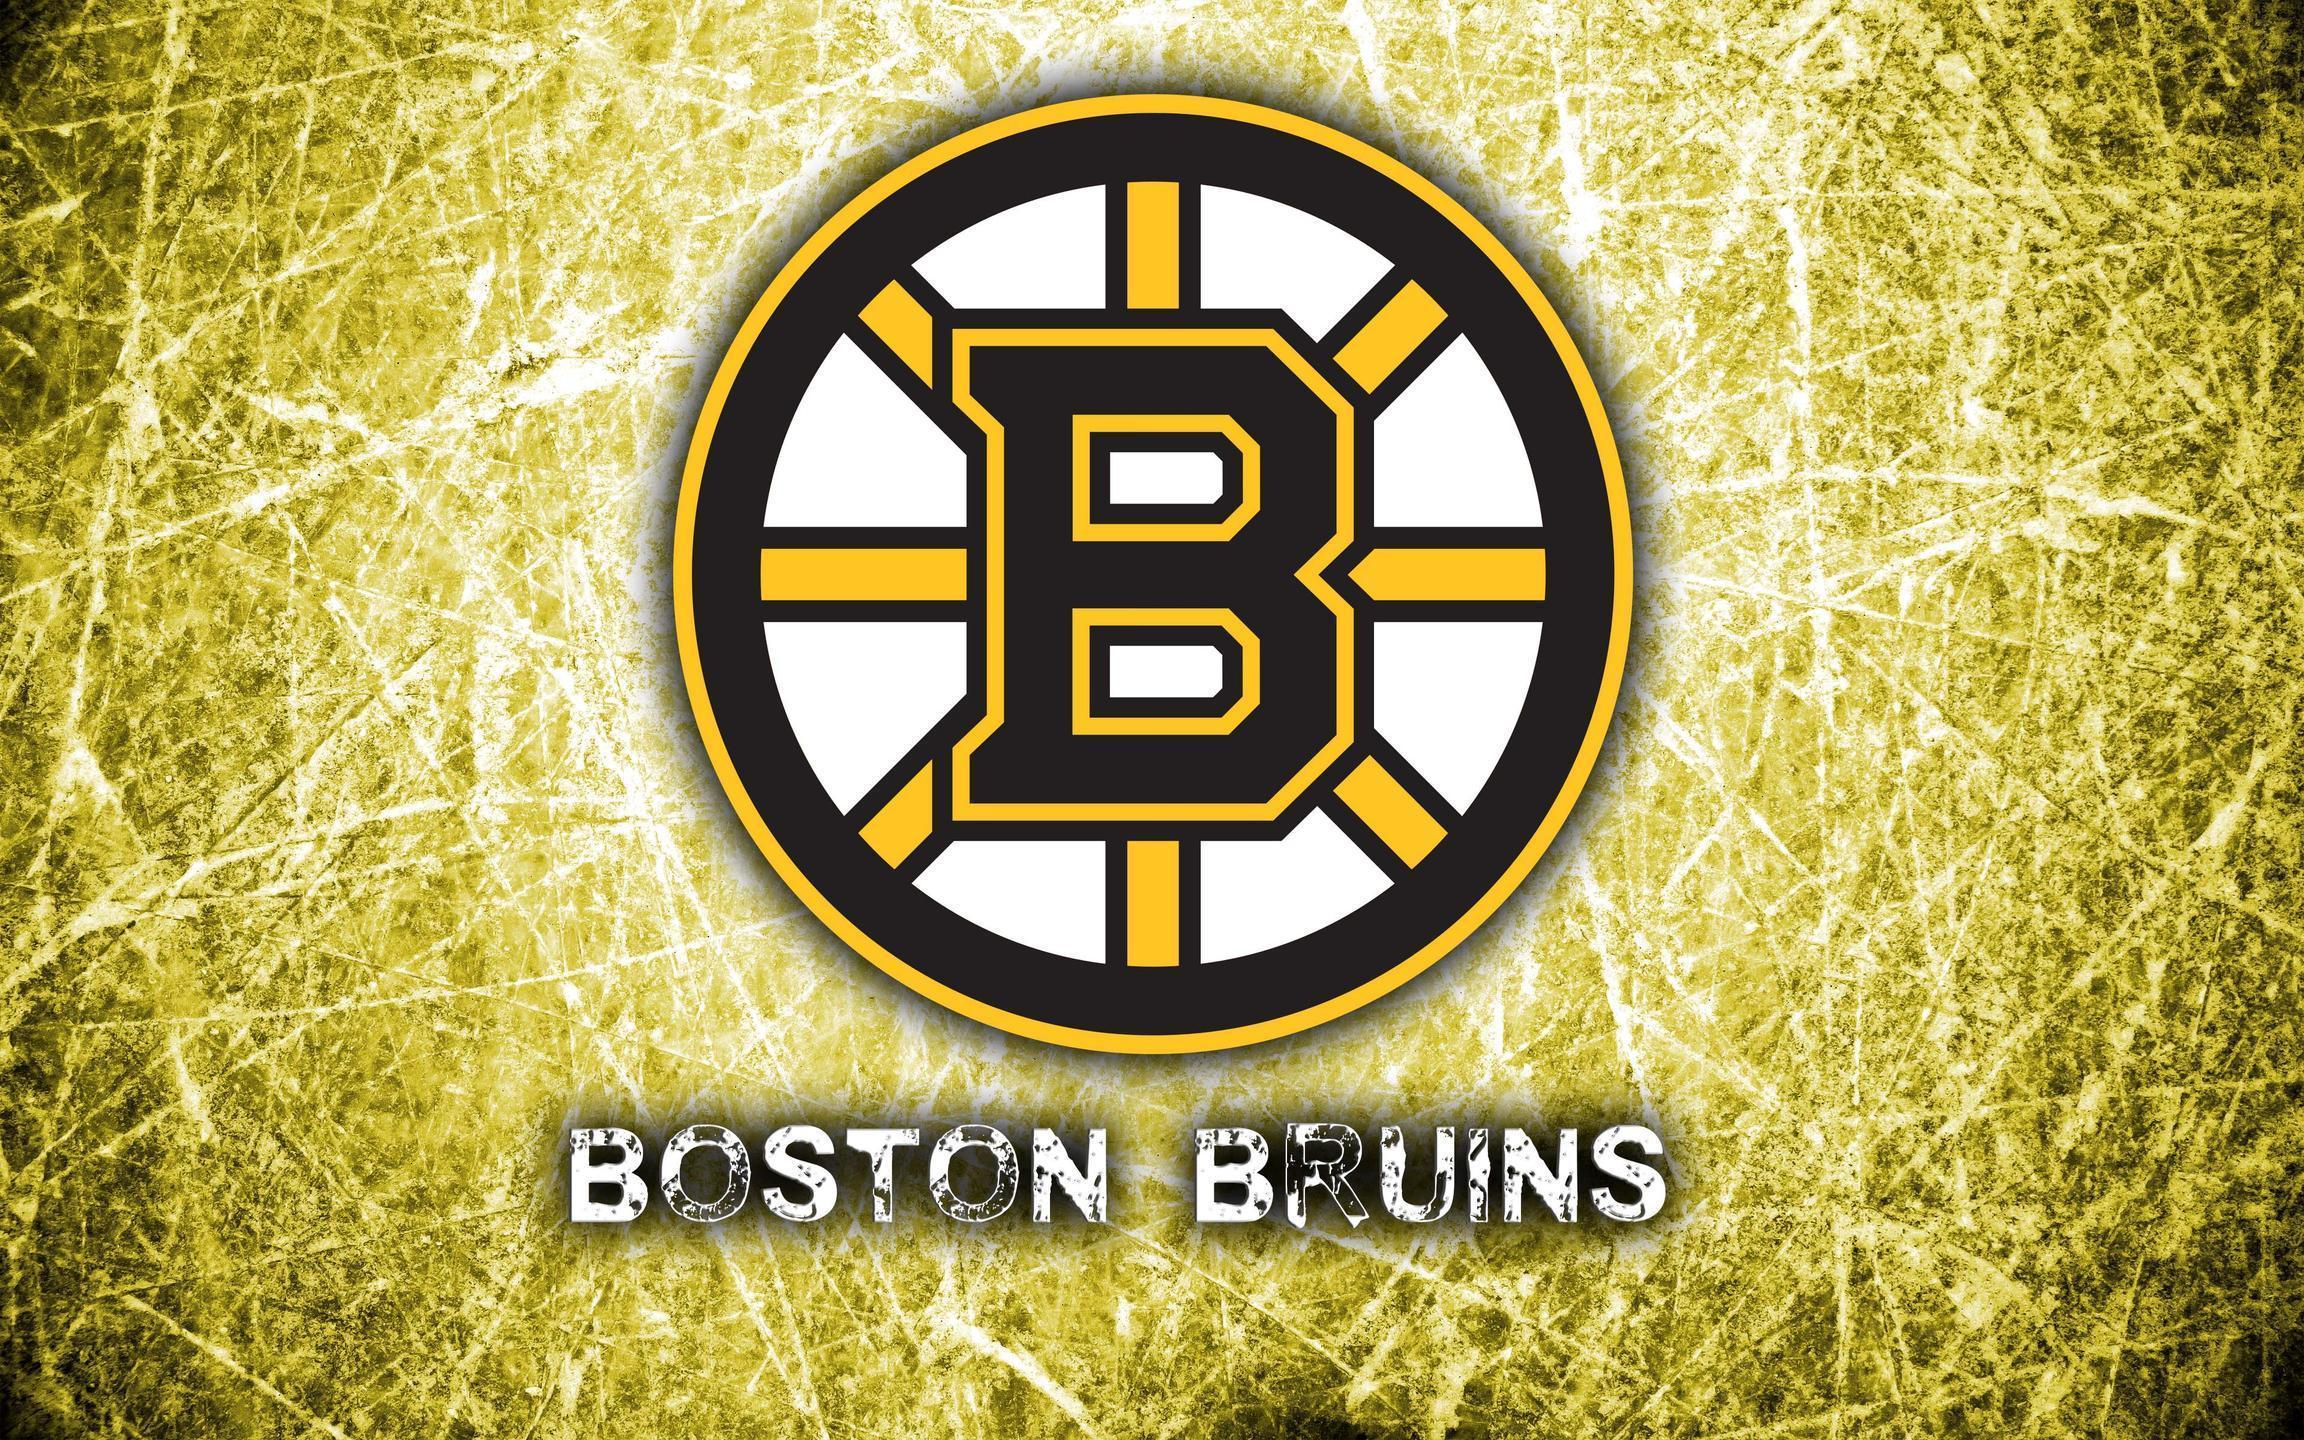 Boston Bruins 2014 Logo Wallpapers Wide or HD